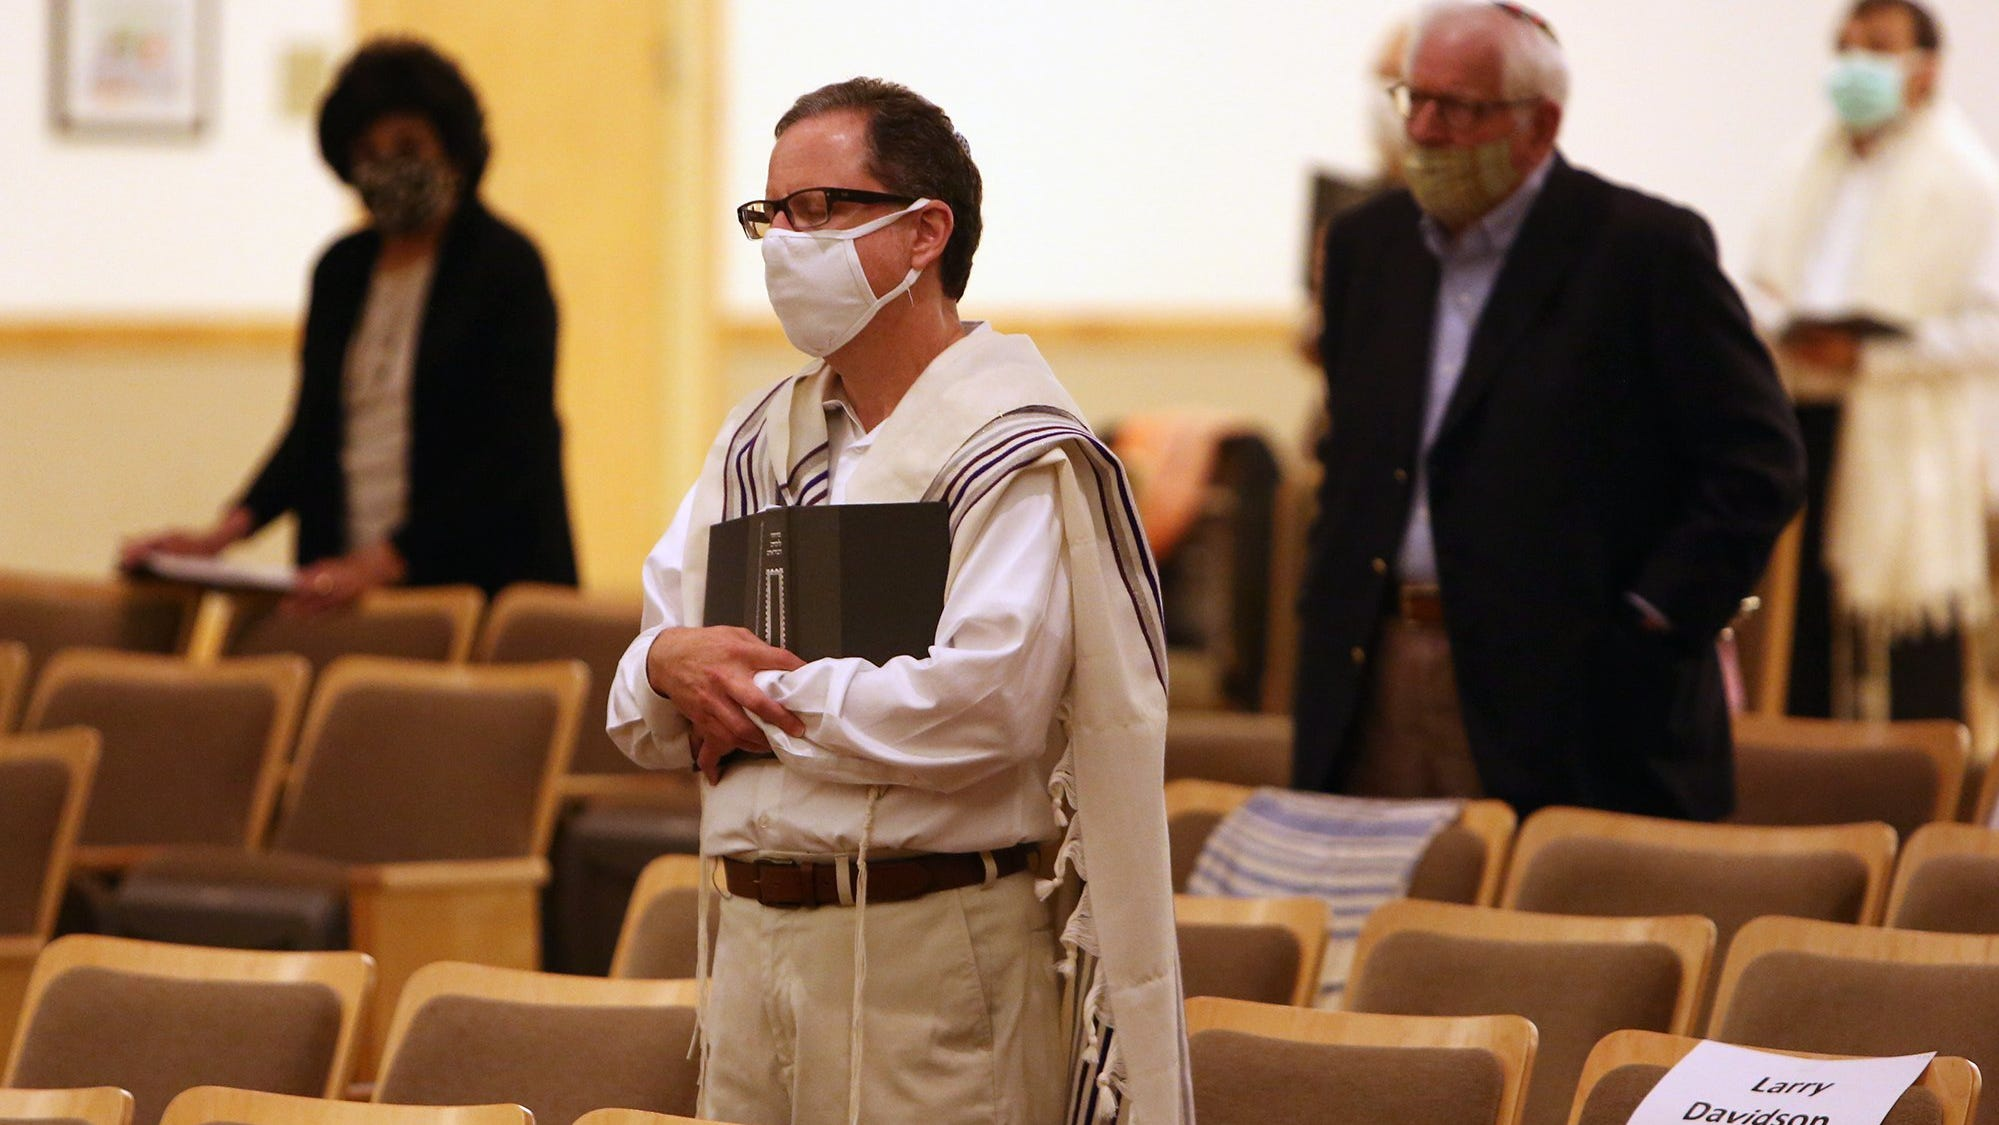 Larry Davidson is among the few people allowed in the sanctuary in assigned seatsfor the Yom Kippur service at Congregation Agudas Achim on Monday night. As part of the pandemic response, the service was livestreamed. [ERIC ALBRECHT/Dispatch]